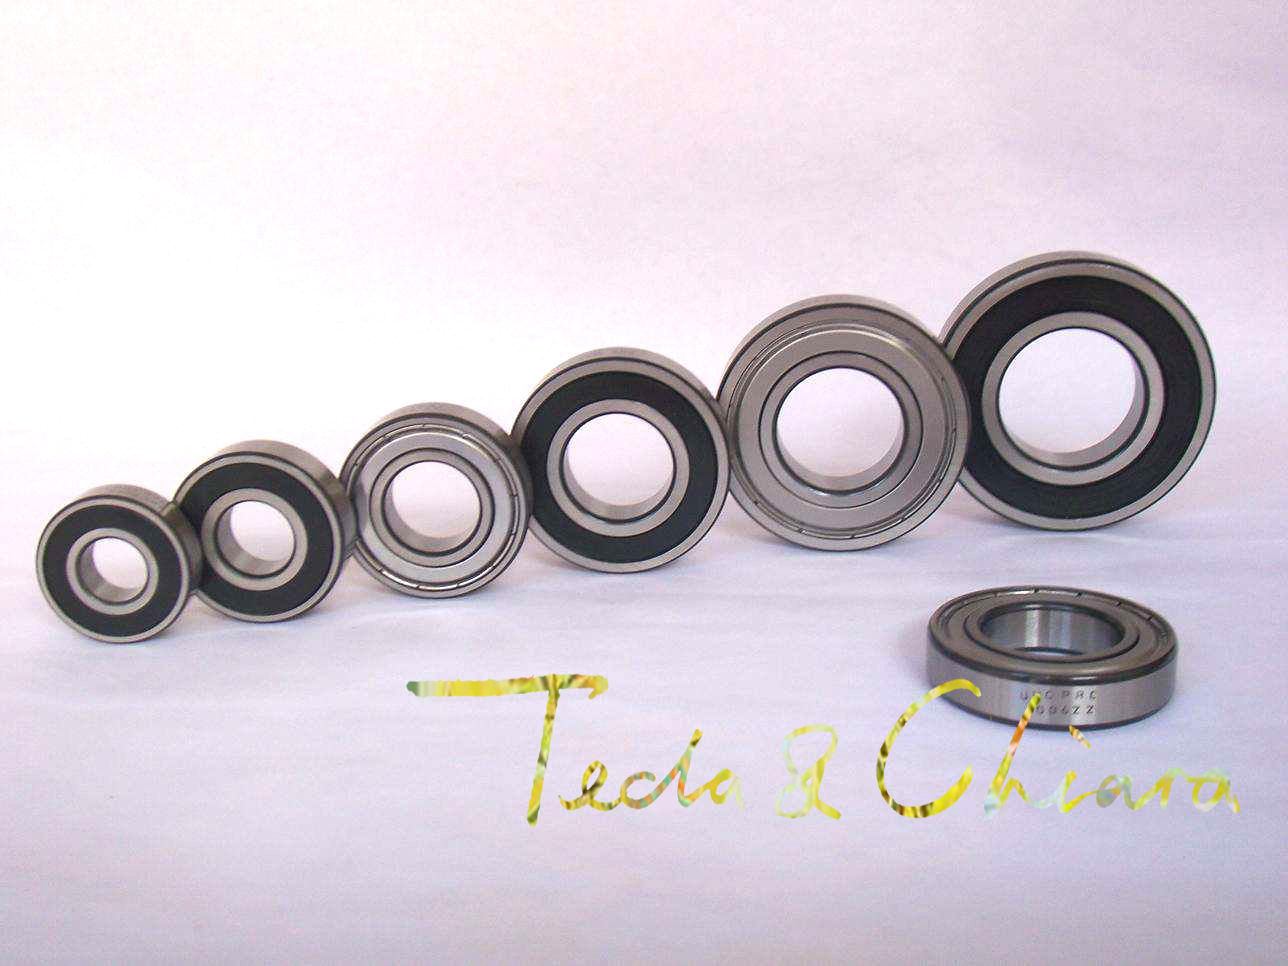 624 624ZZ 624RS 624-2Z 624Z 624-2RS ZZ RS RZ 2RZ Deep Groove Ball Bearings 4 x 13 x 5mm High Quality 604 604zz 604rs 604 2z 604z 604 2rs zz rs rz 2rz deep groove ball bearings 4 x 12 x 4mm high quality